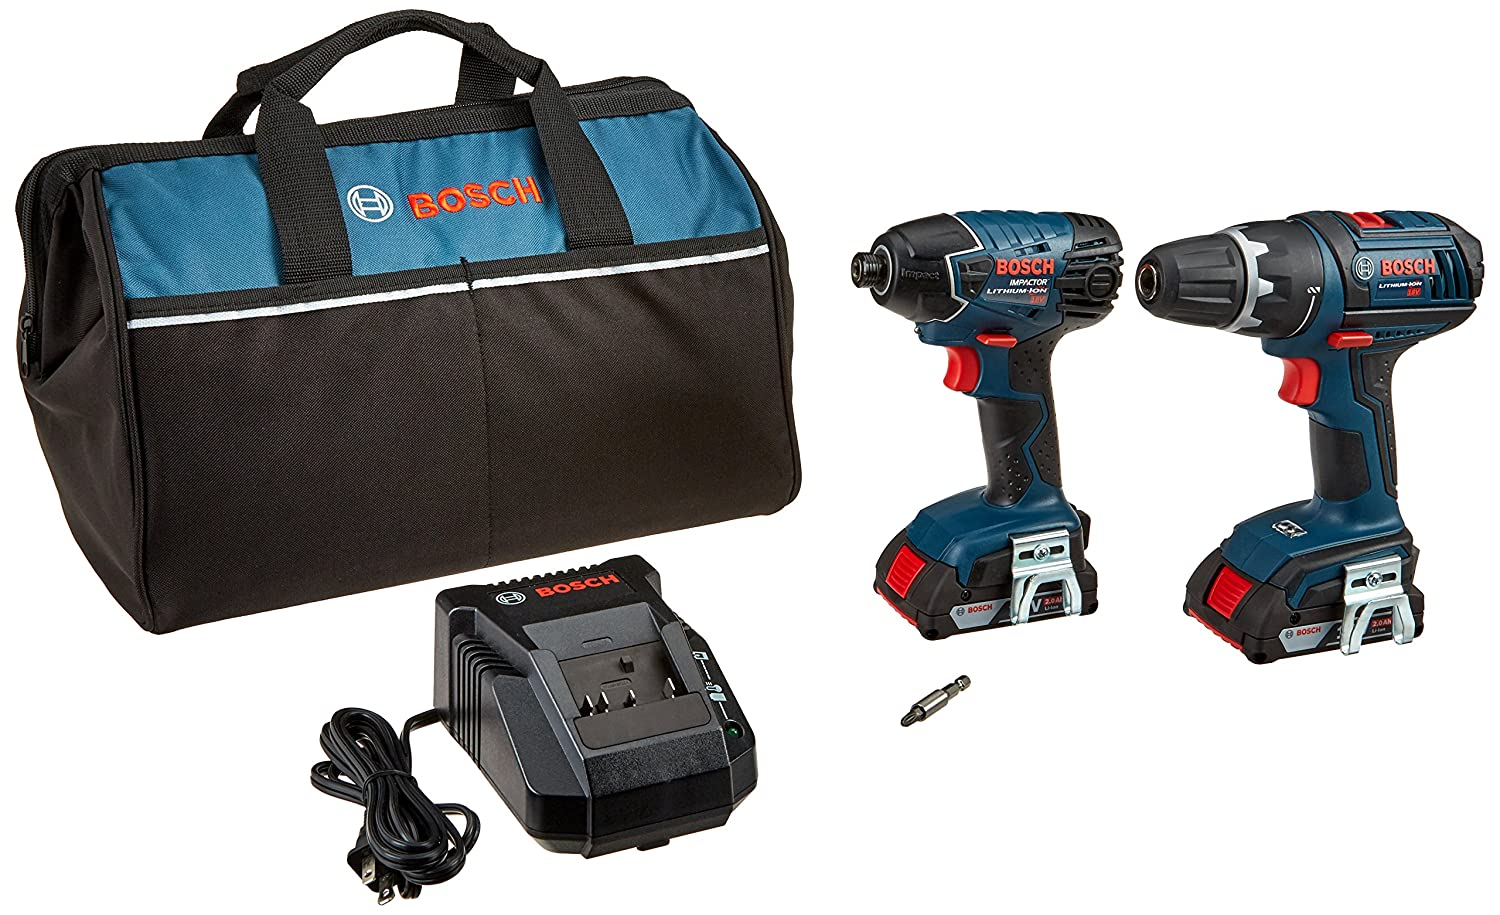 Bosch CLPK232-181 18V 2-Tool Combo Kit Drill Driver Impact Driver with 2 2.0 Ah Batteries